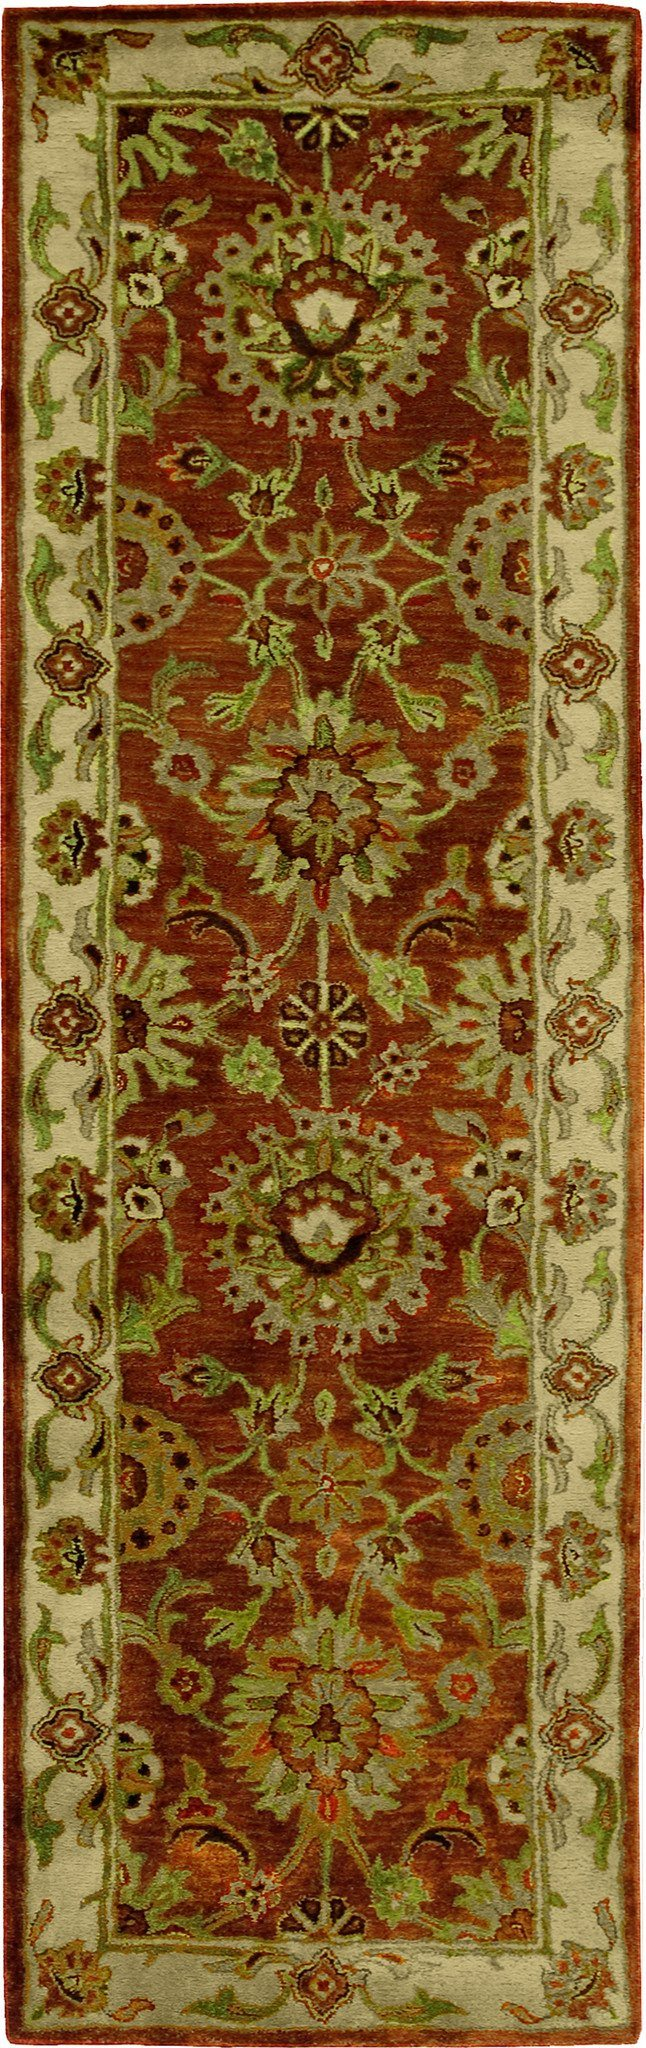 "Jaipur Rust Rug - 8 Size and Shape Options Rugs Nourison 2'4"" x 8' Runner"